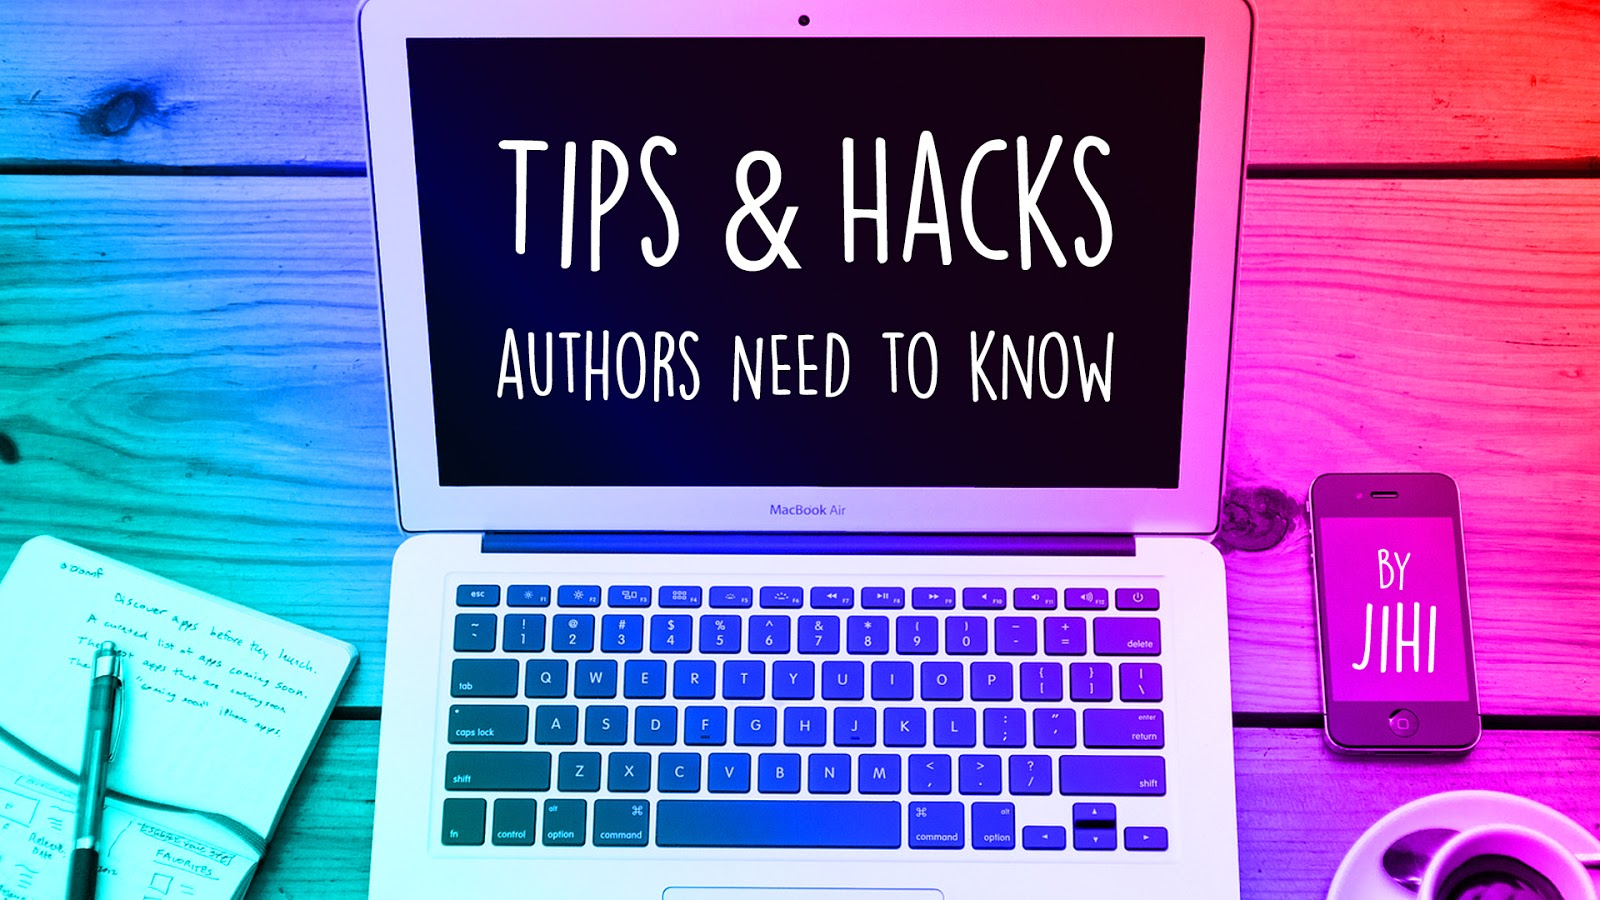 Tips & Hacks Authors NEED to Know - by Jihi | Episode Life